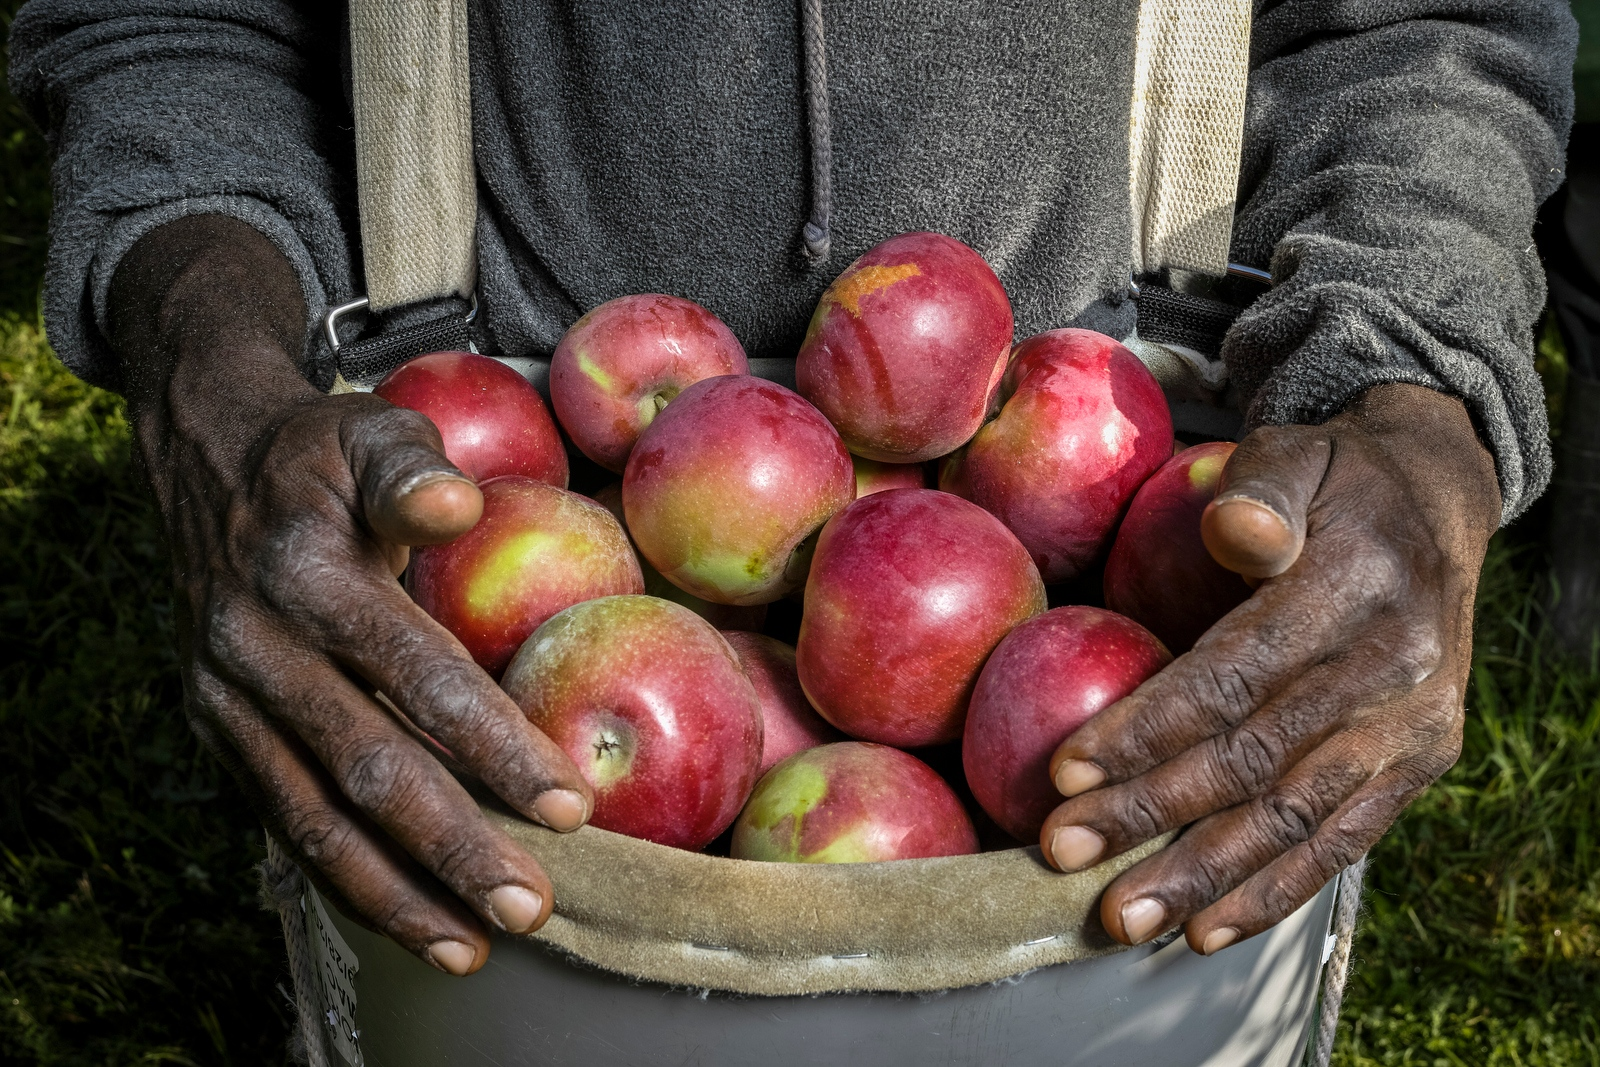 Hands of a Jamaican apple picker with a basket full of apples. Sunrise Orchards, Cornwall, Vermont.